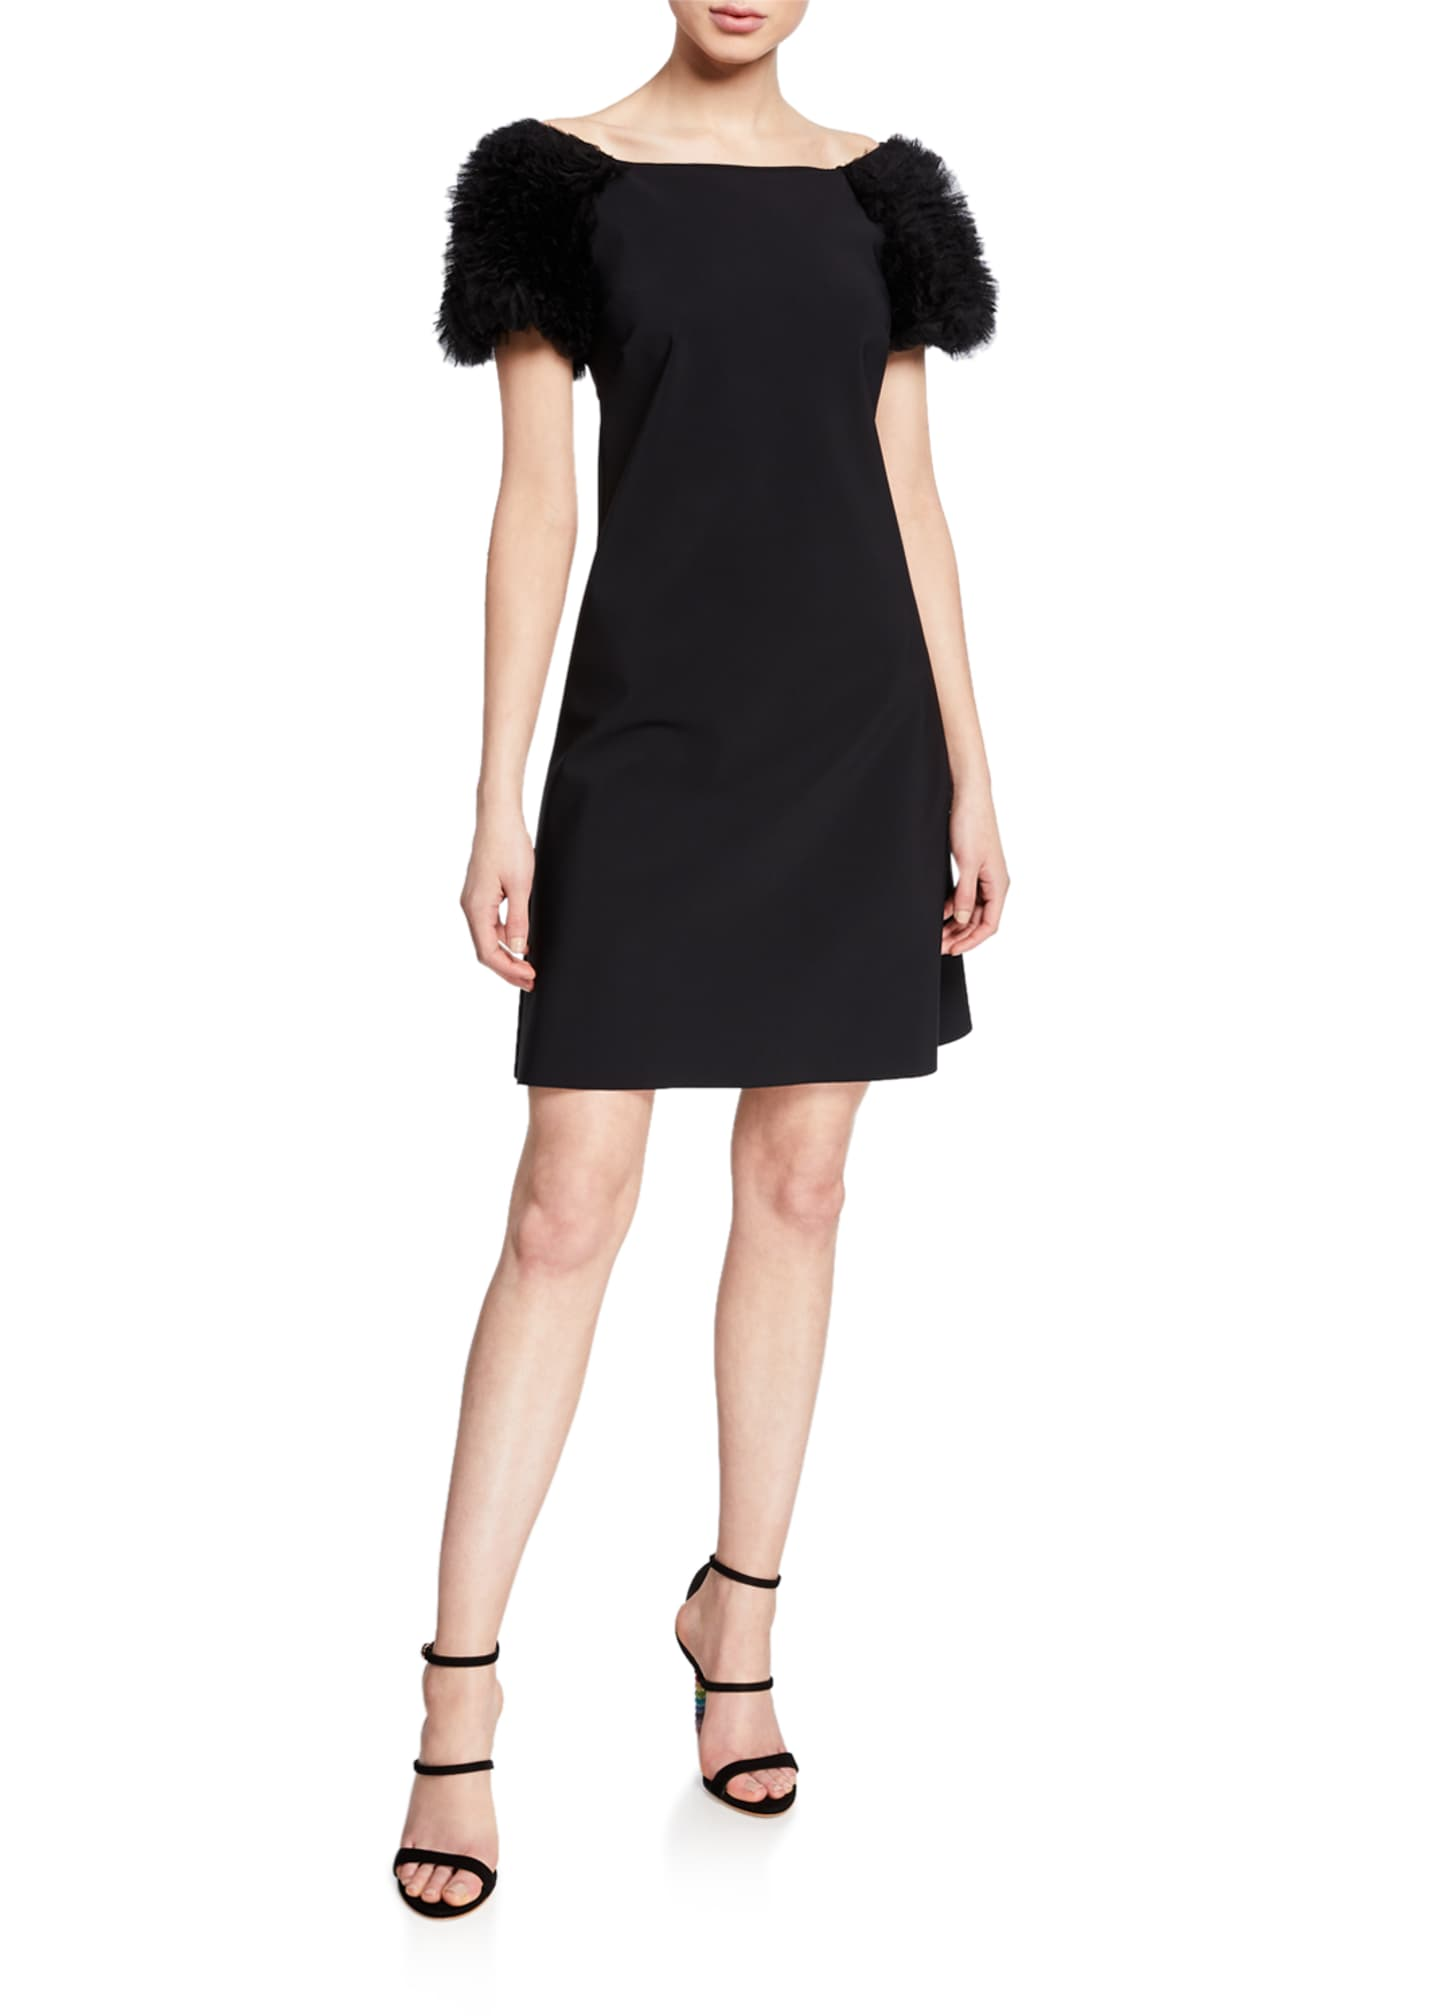 La Petite Robe Boat-Neck Ruffle-Sleeve Short Dress